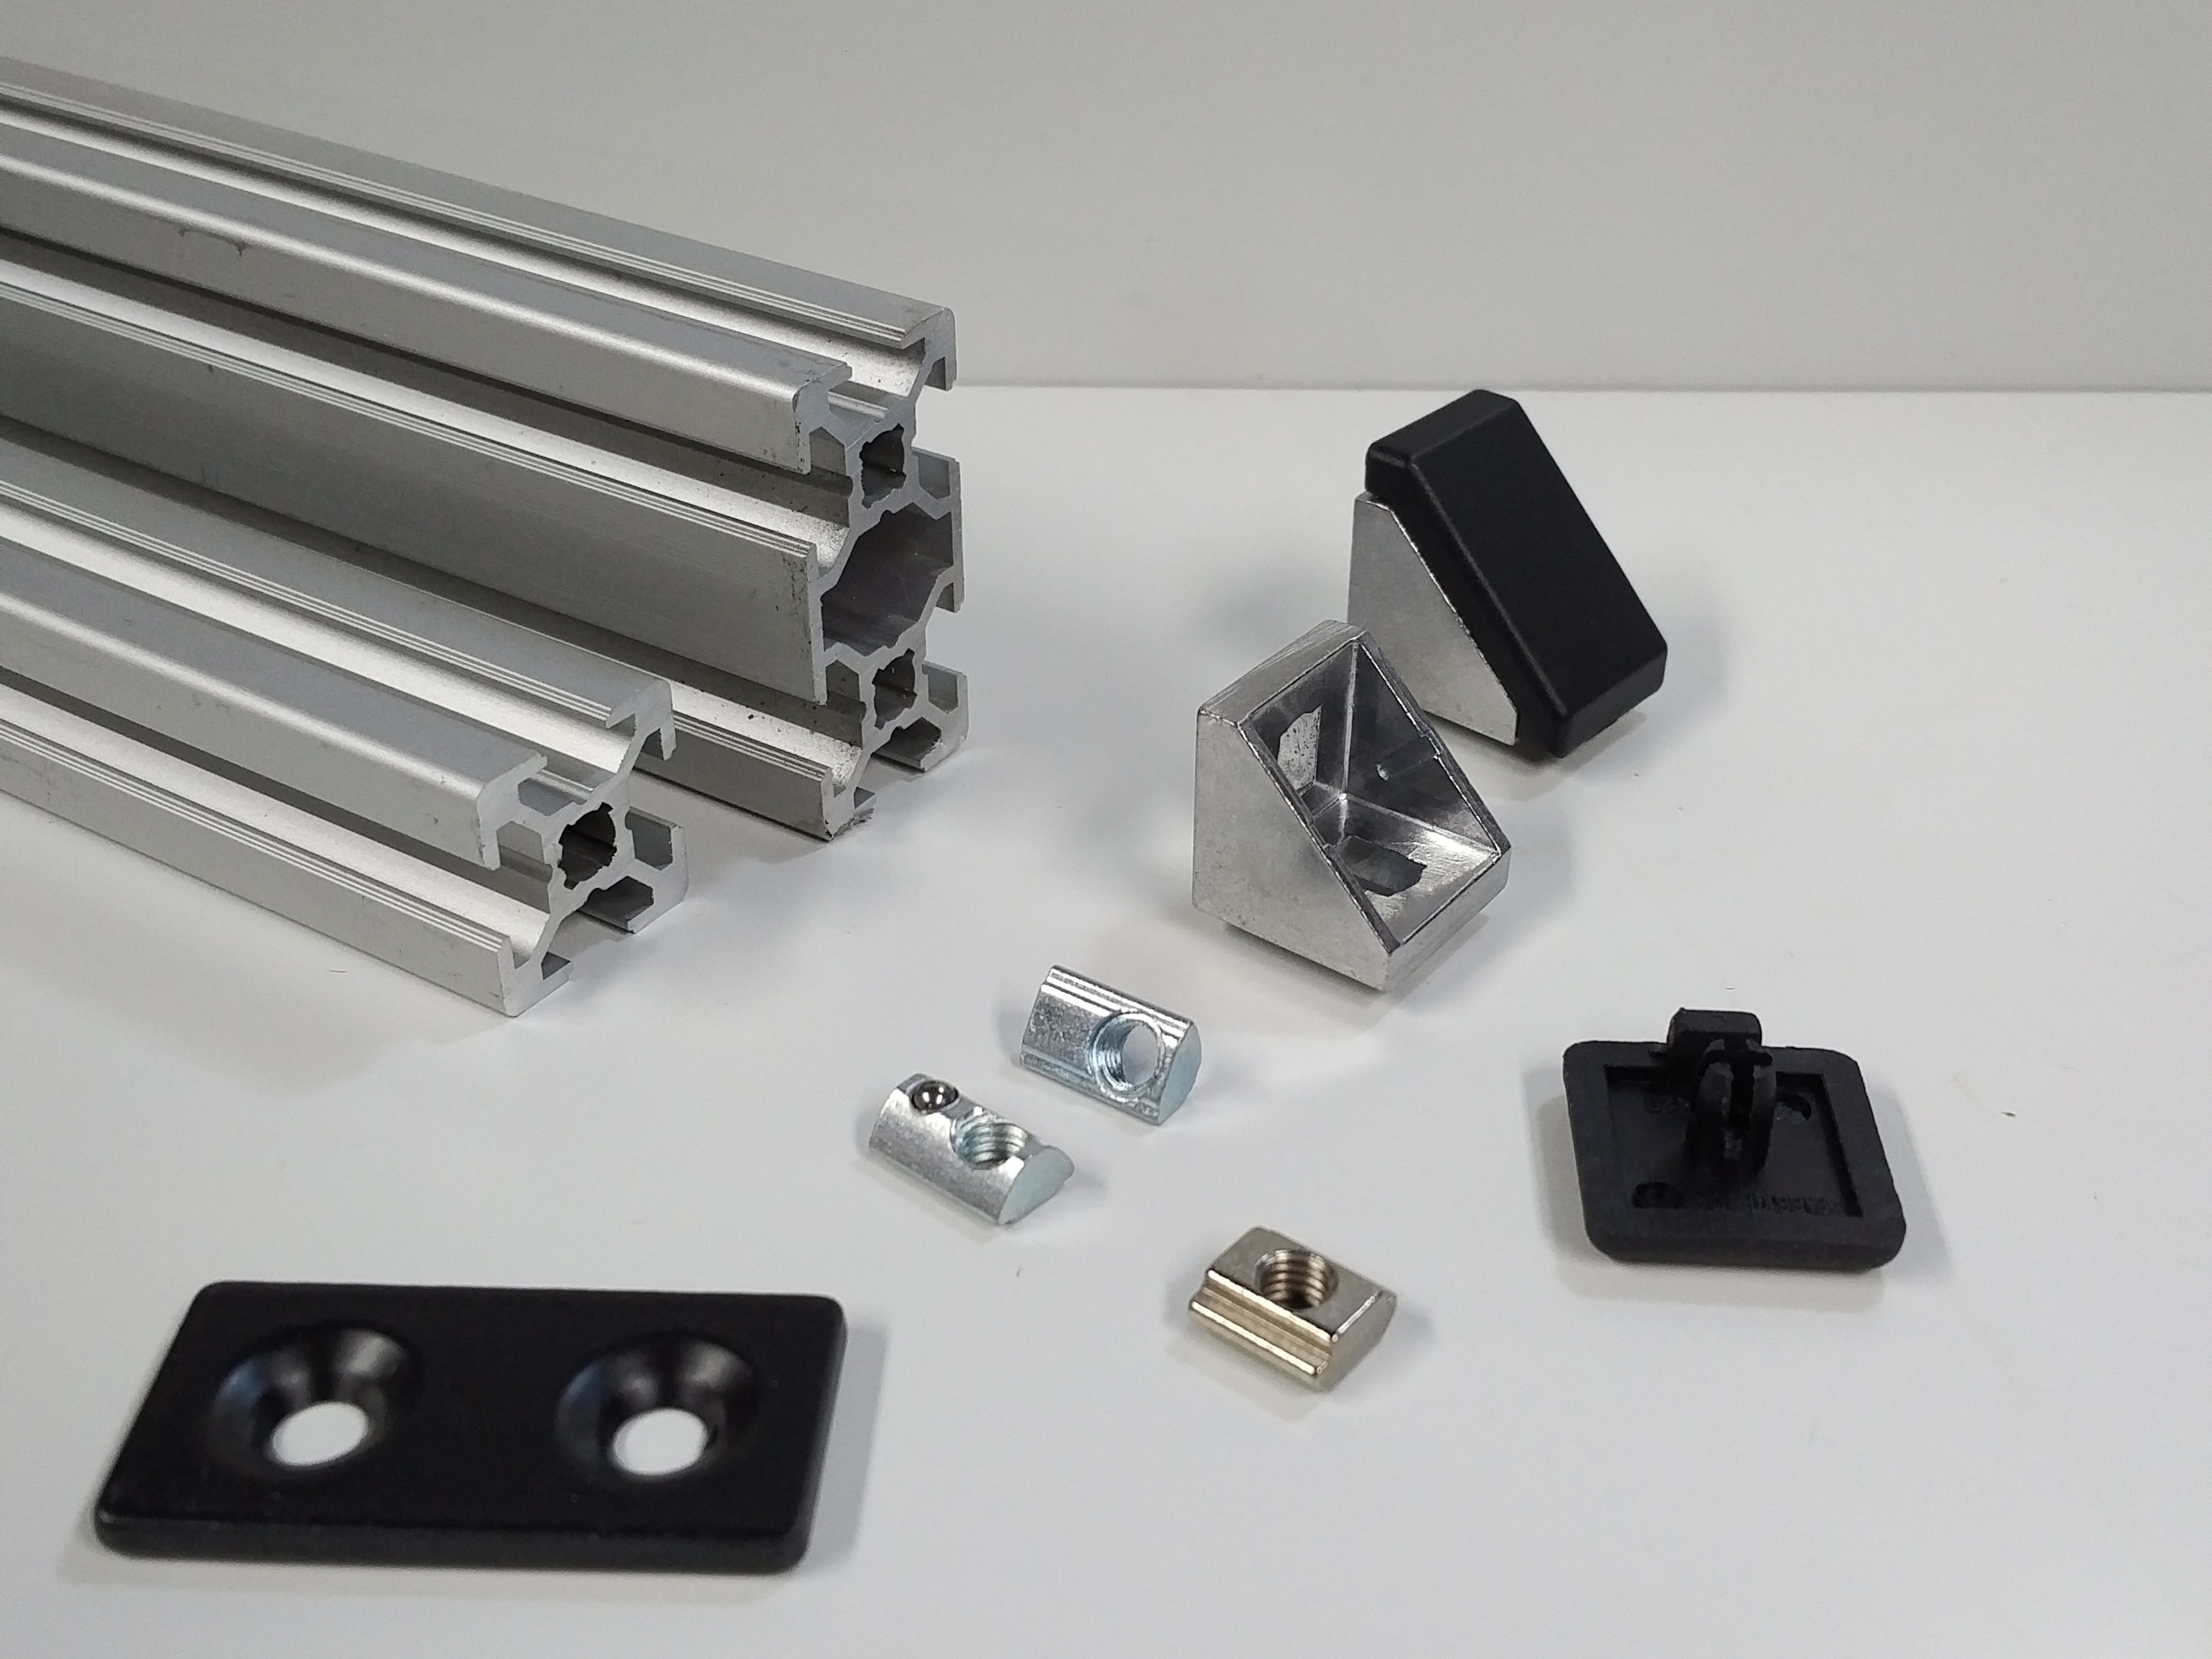 TNUTZ | Your leader in T-Slotted Aluminum Hardware & Components